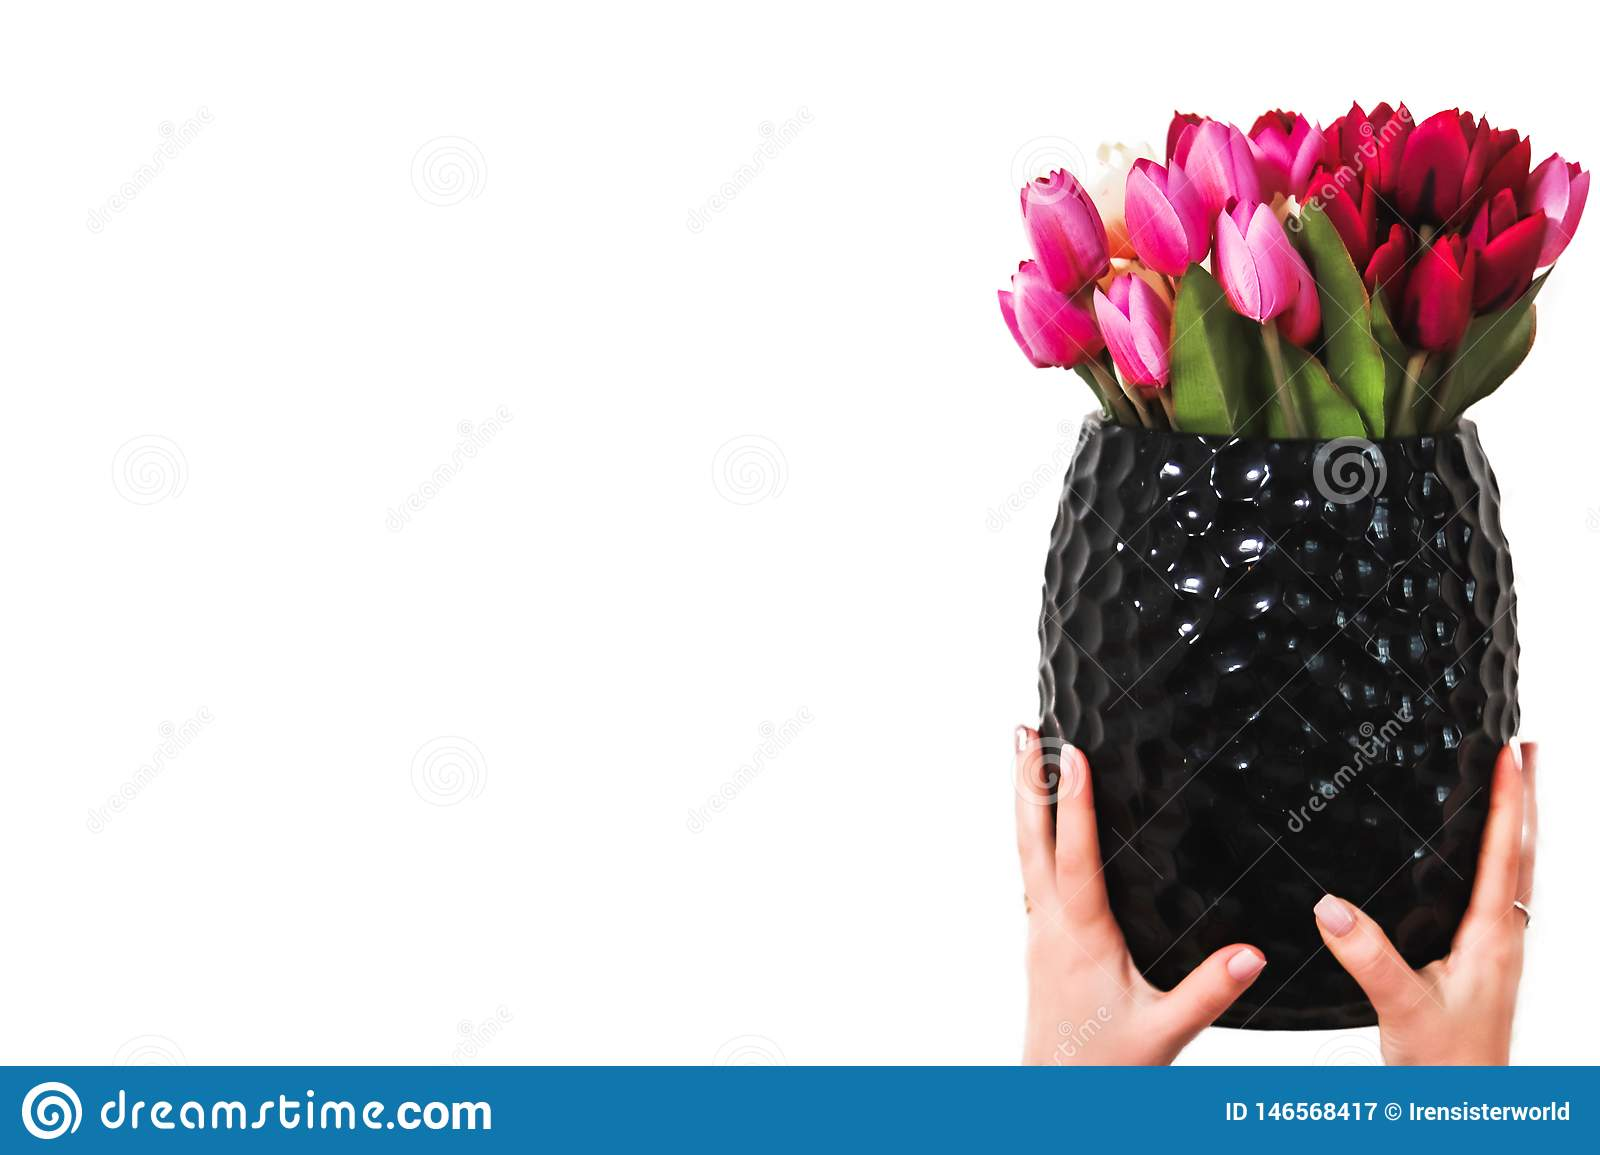 Hands holding a bouquet of flowers in a vase